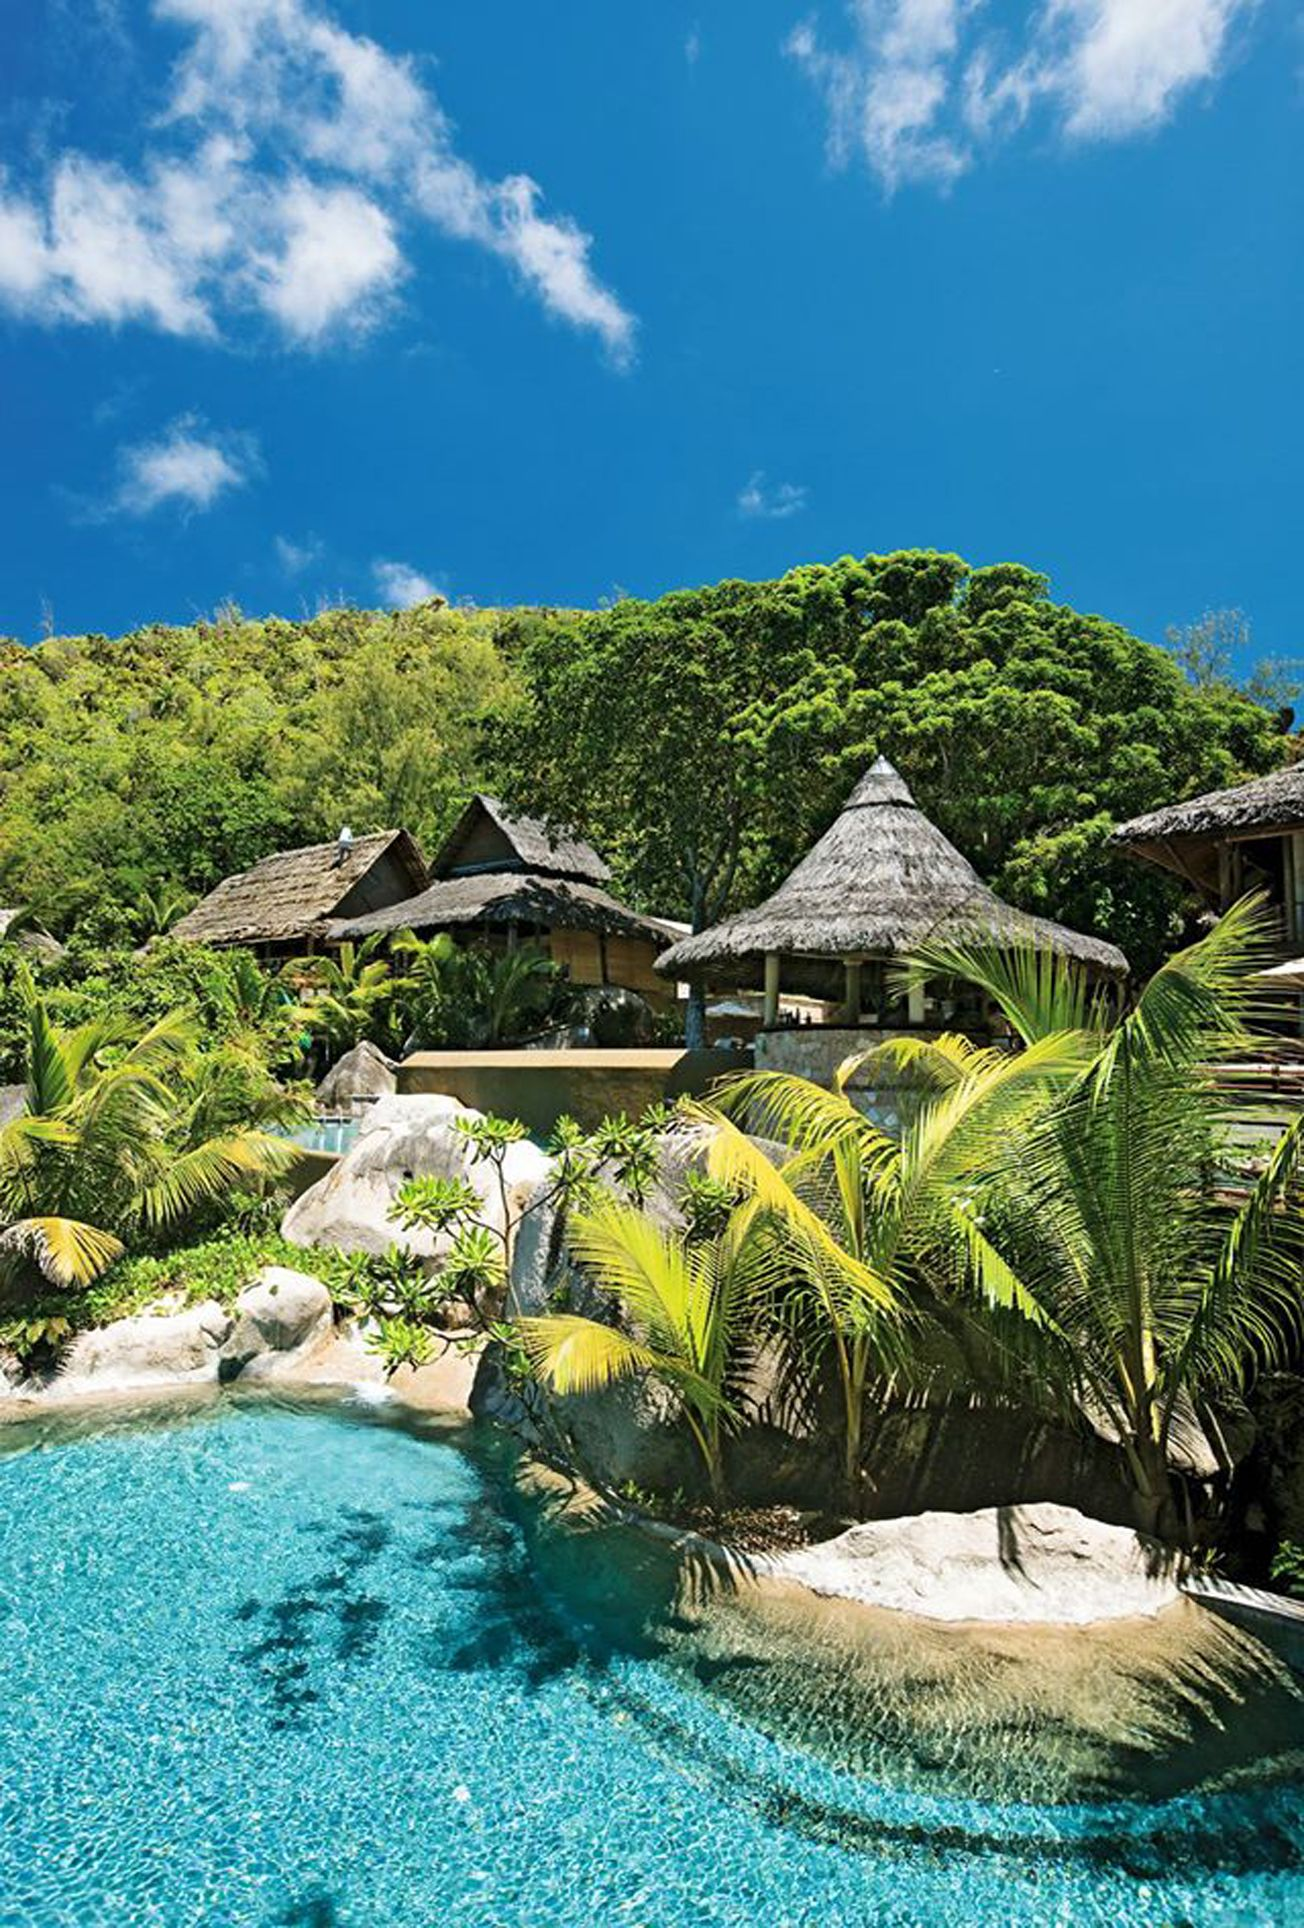 Raffles Praslin Seychelles Resort Is One Of The World's